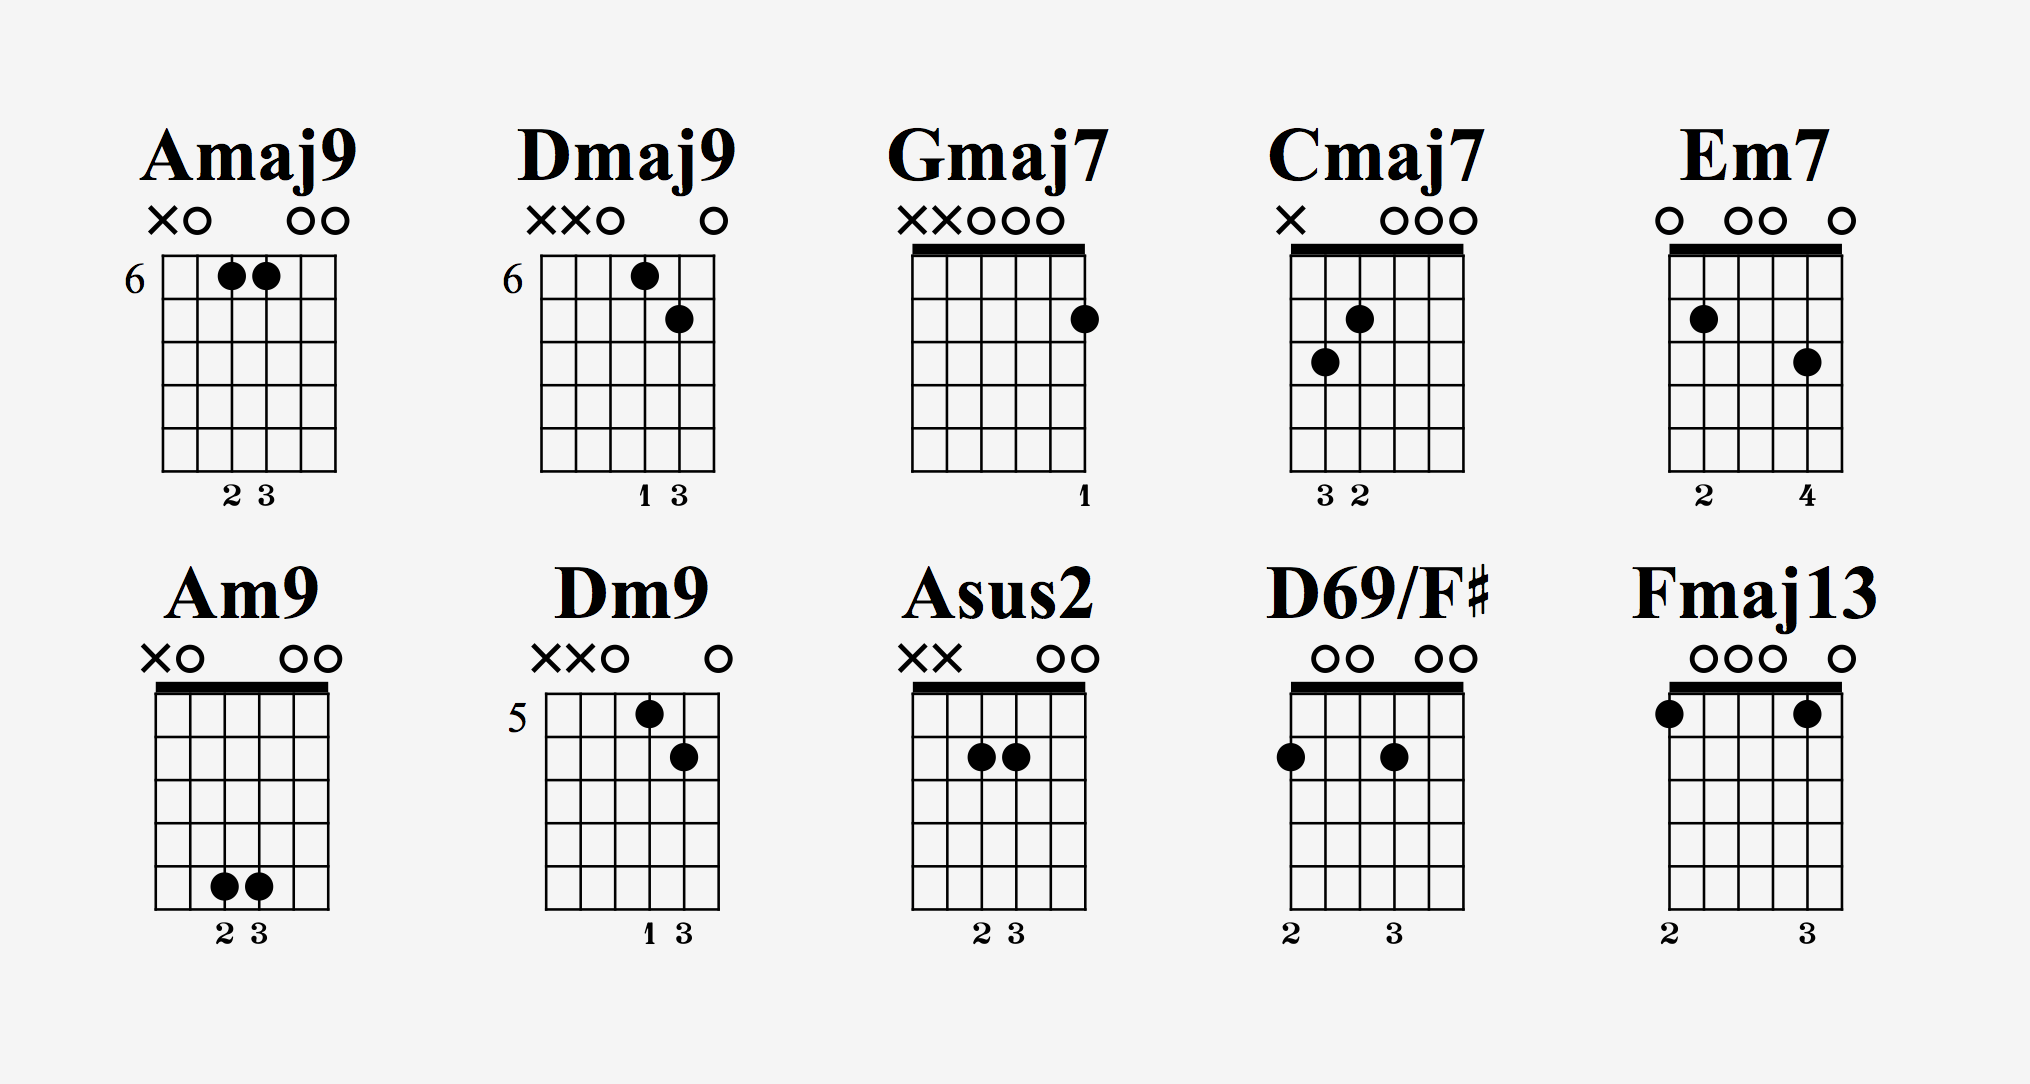 15 Chords That Are Easy For Beginners   Guitar Pro Blog   Arobas ...